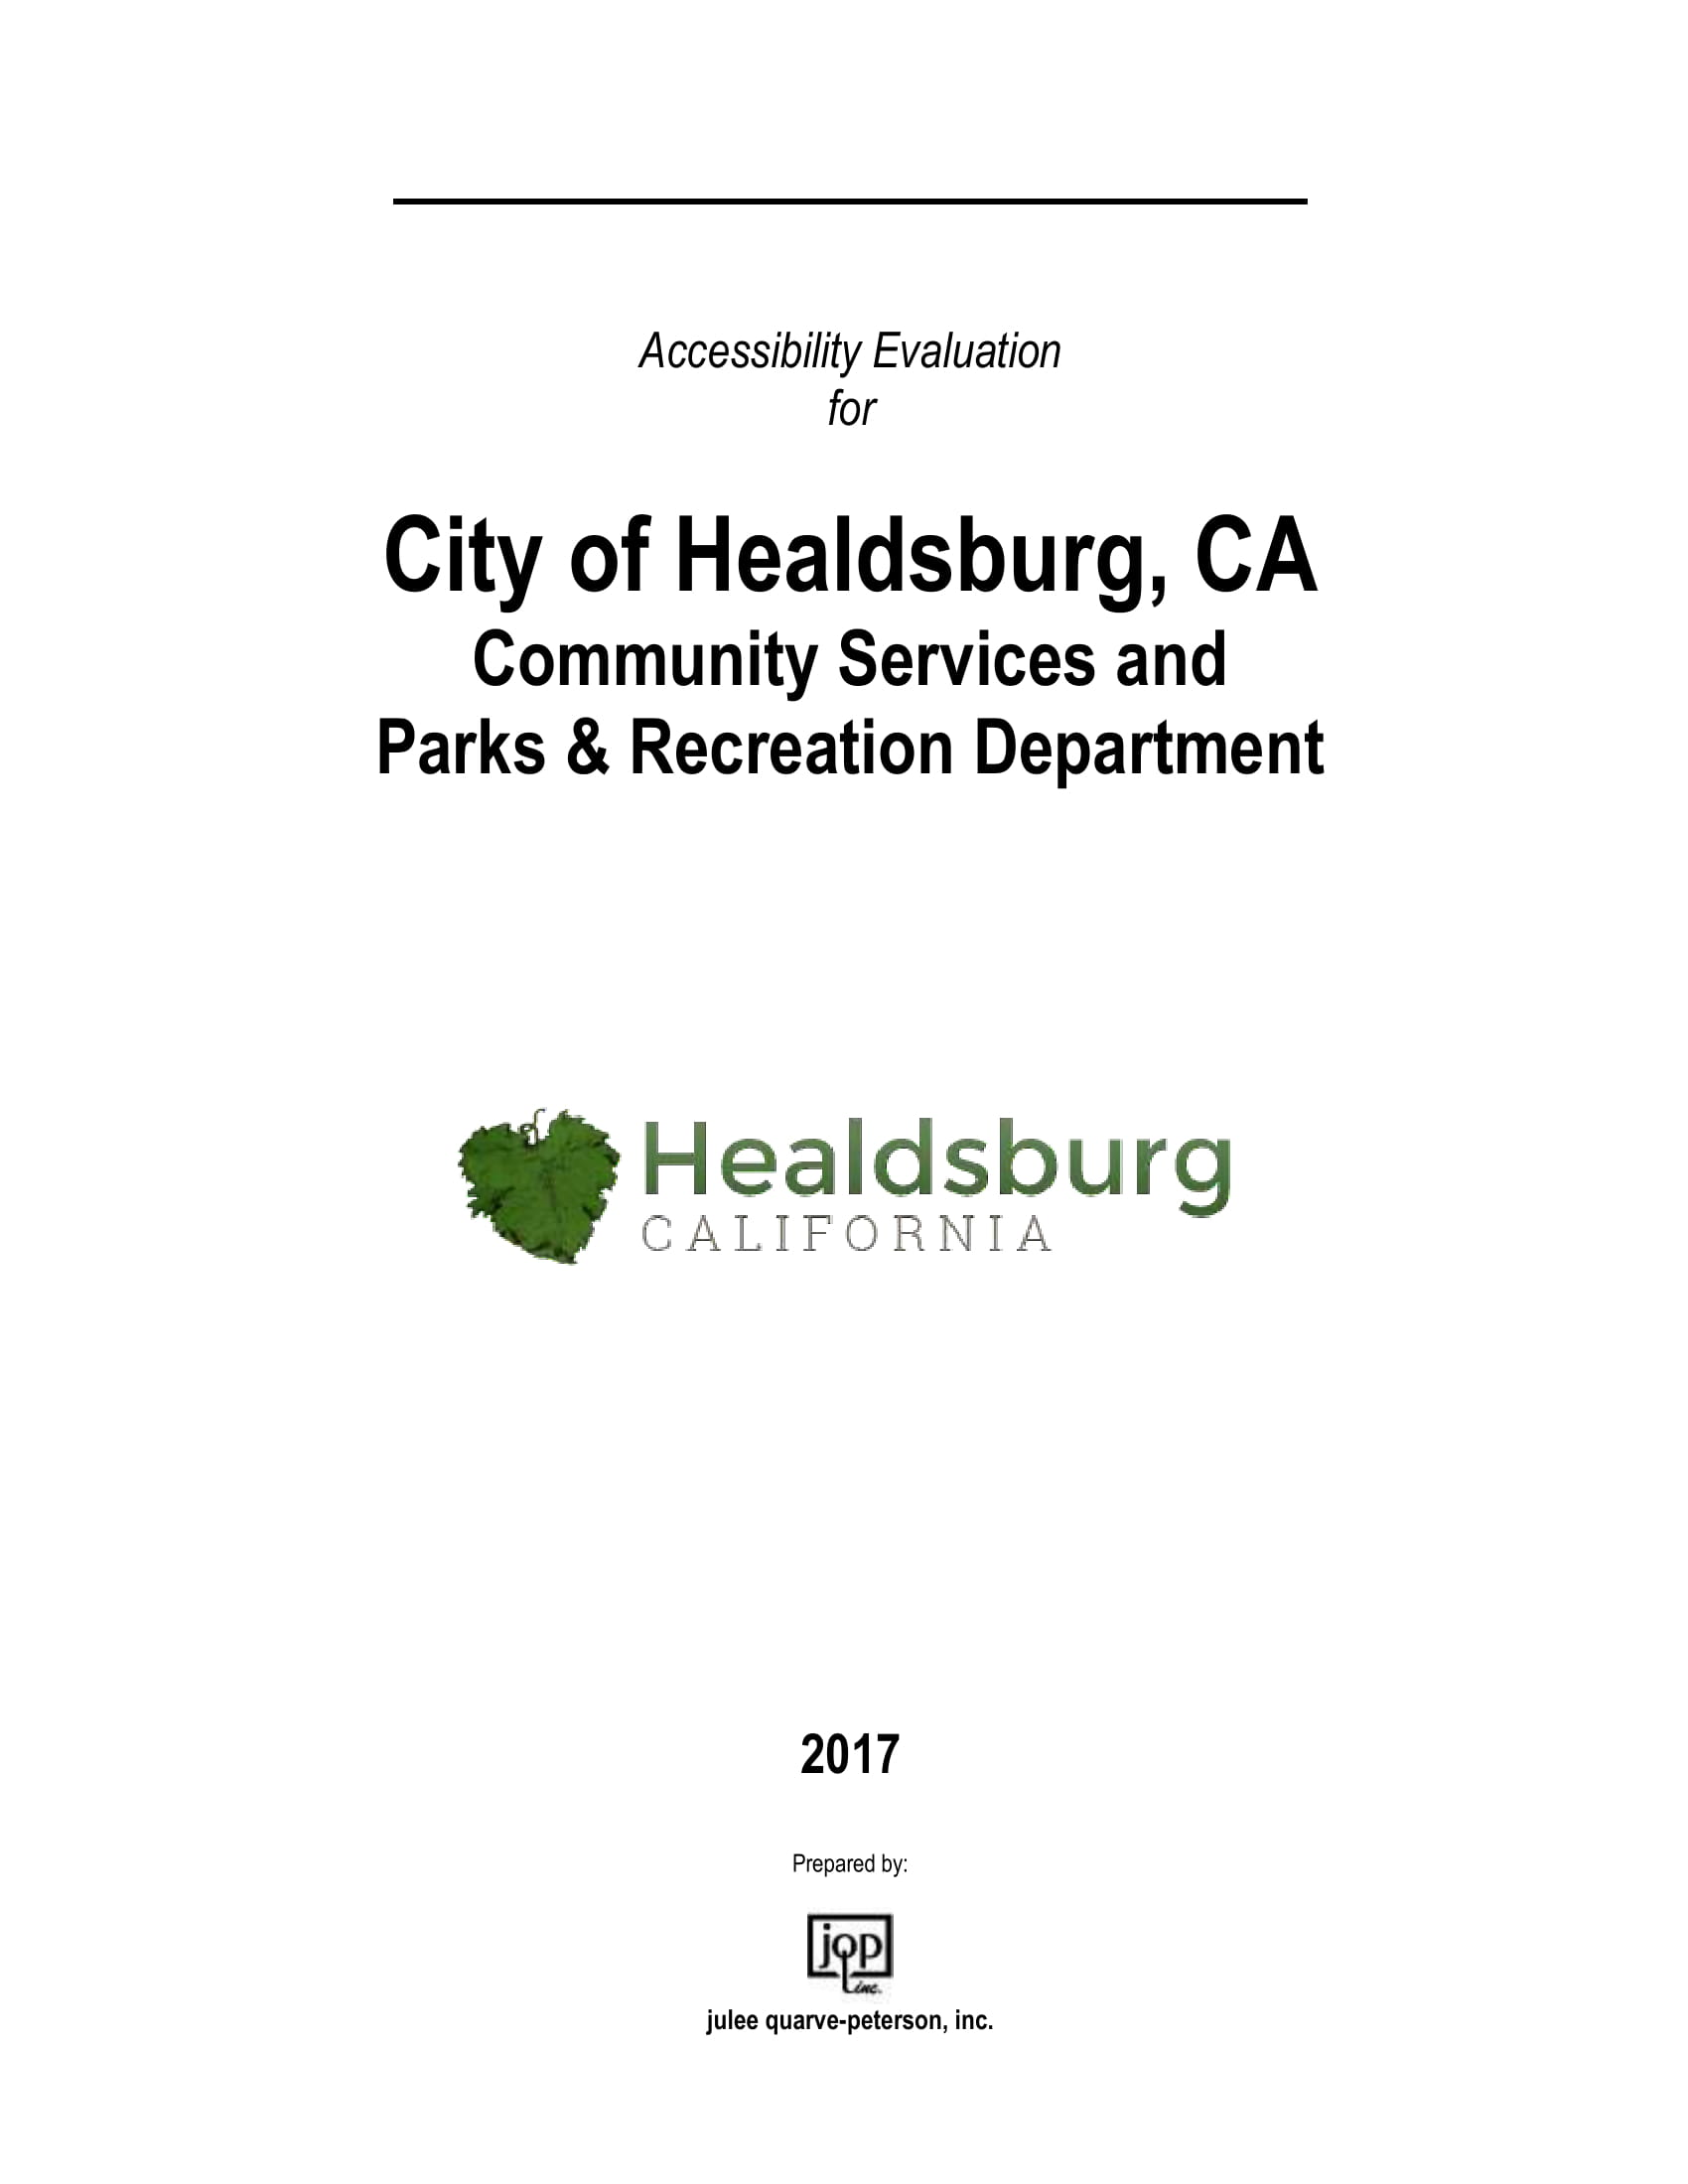 Accessibility Evaluation Cover